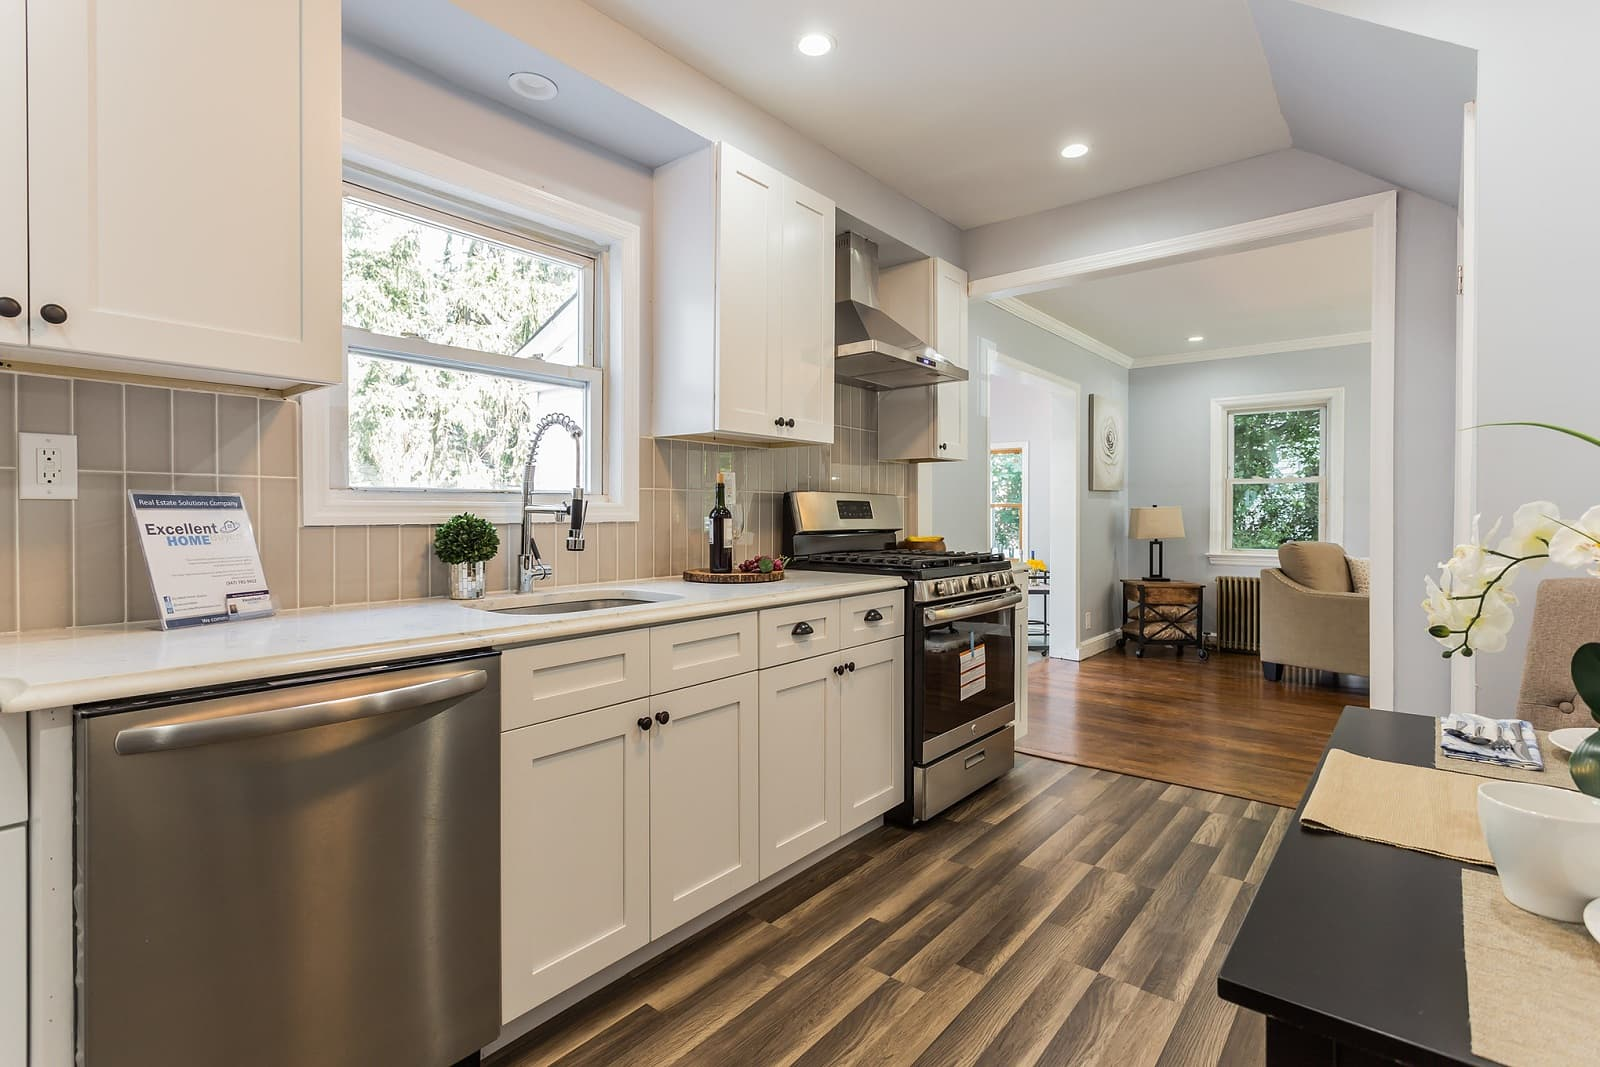 Real Estate Photography in Hempstead - NY - USA - Kitchen View